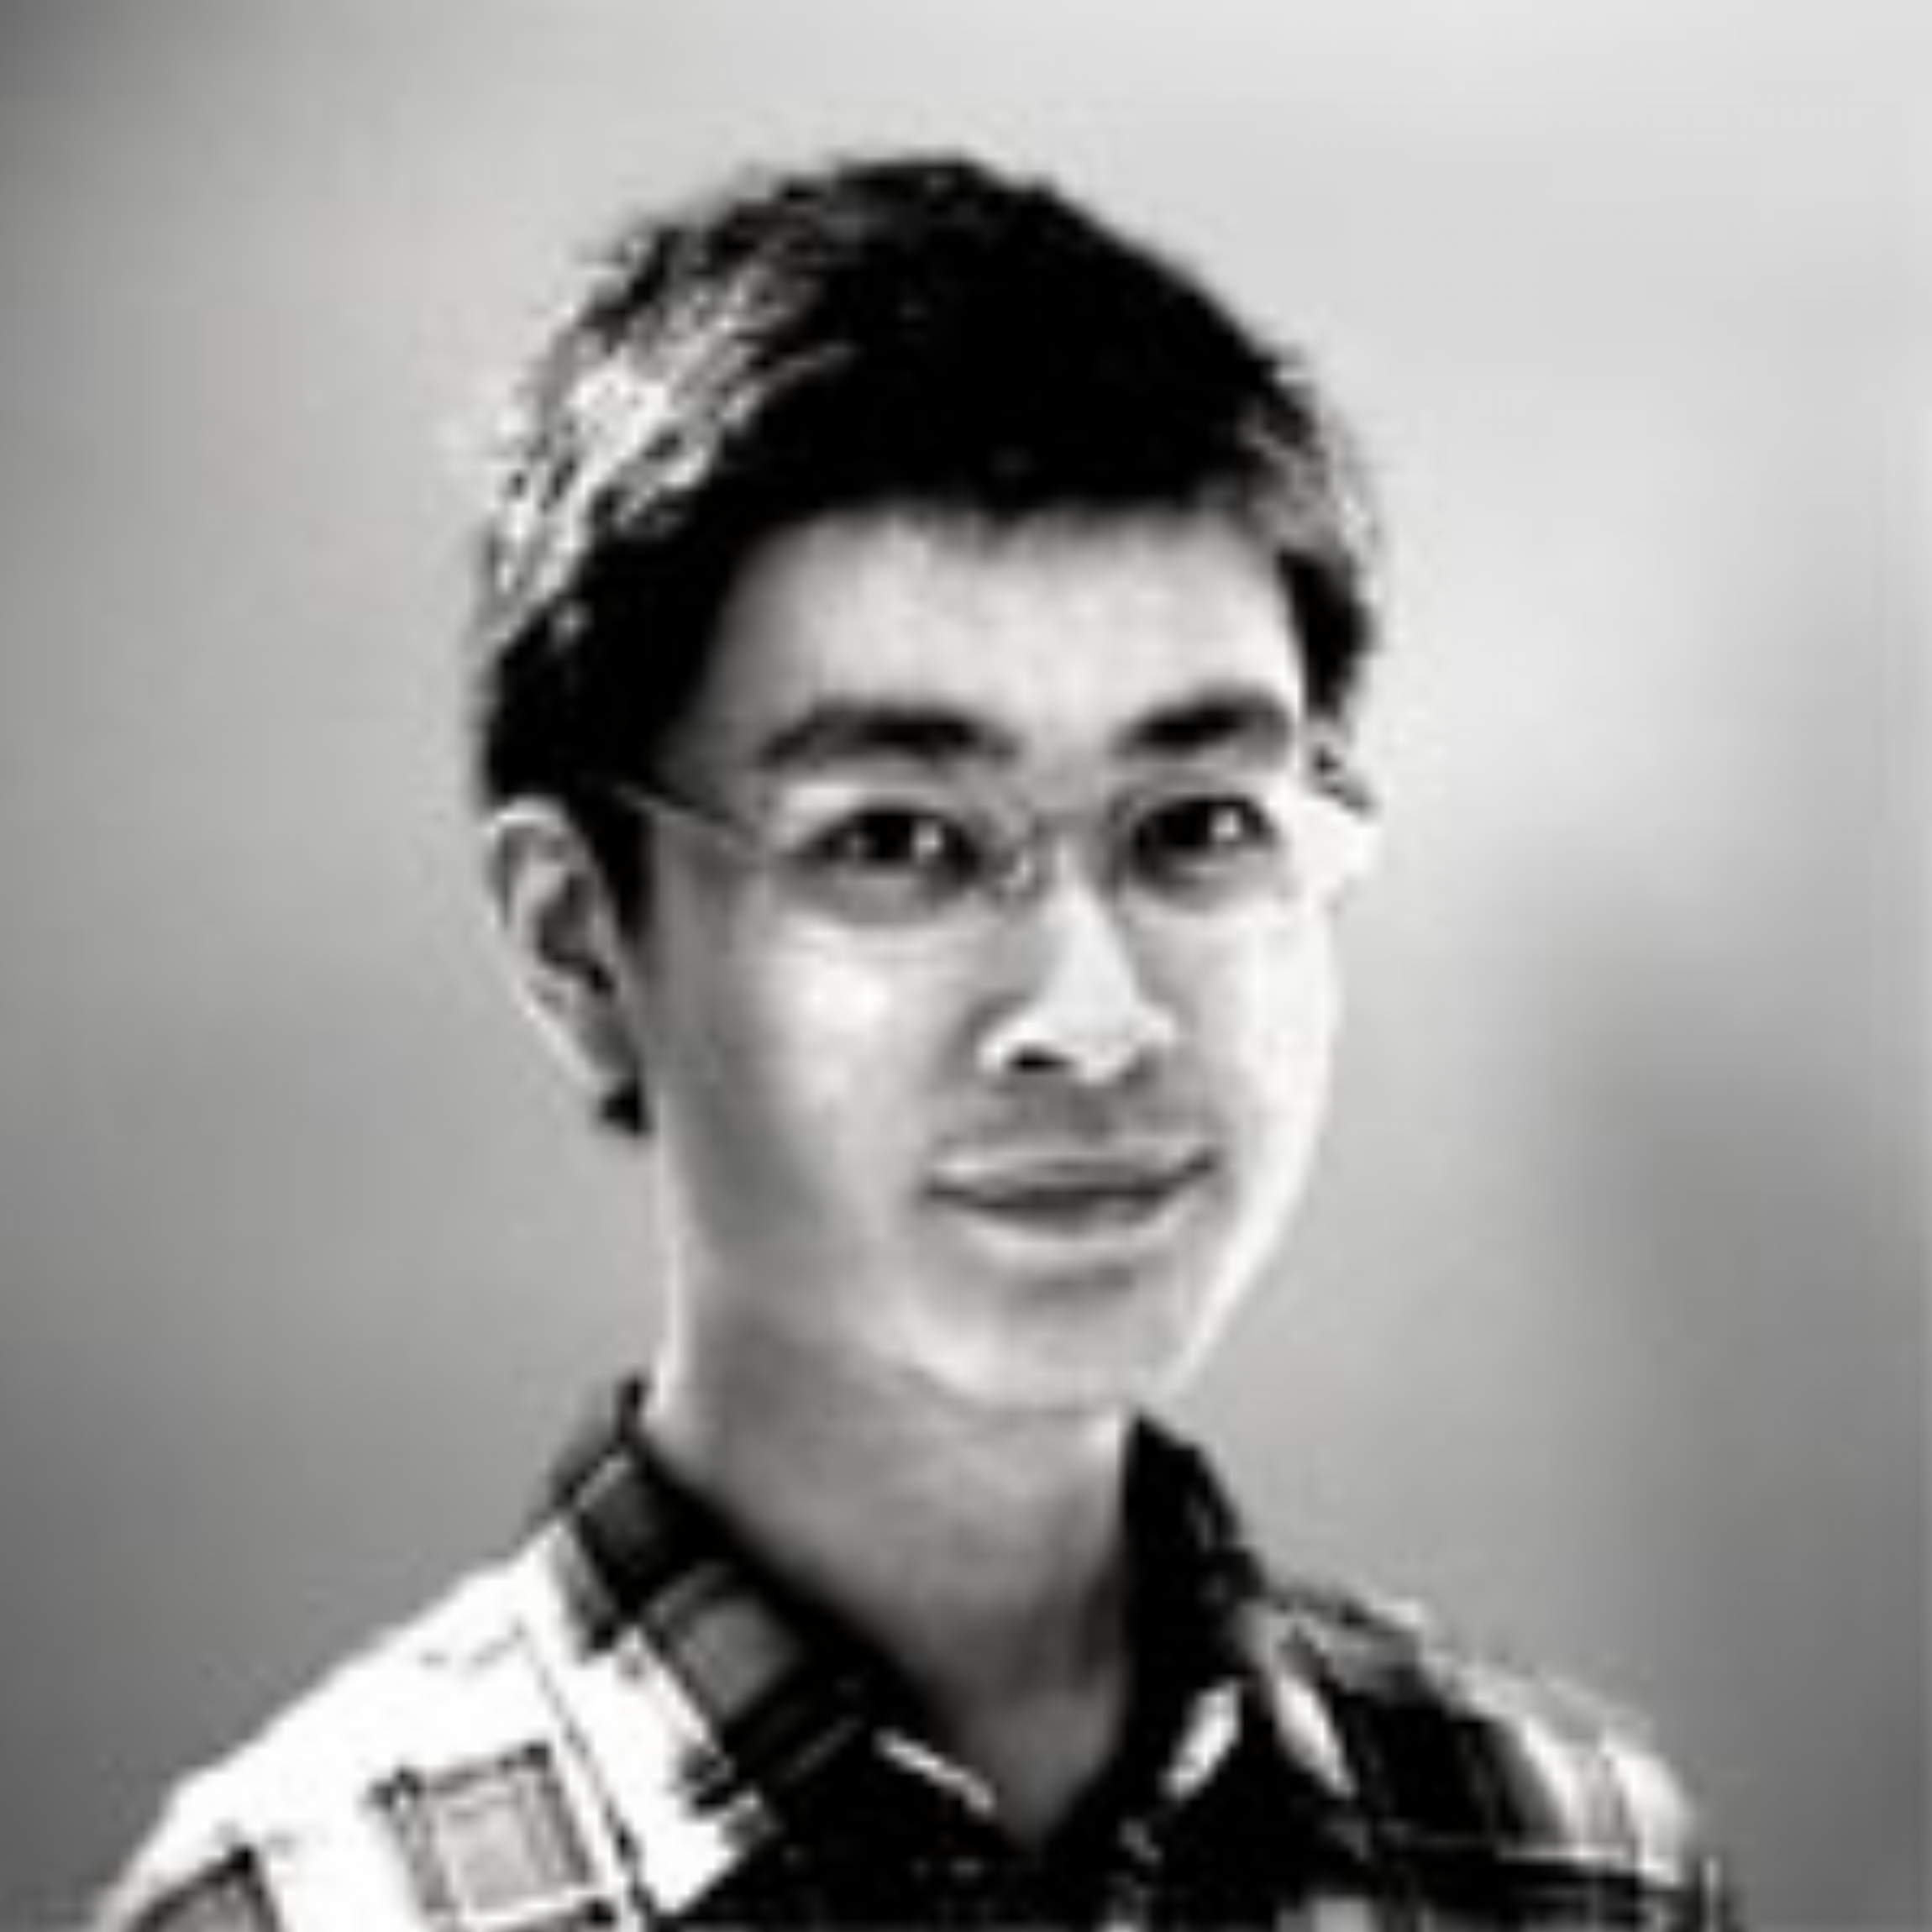 Joseph Yong - Applications Engineer   Joseph joined Shimmer's Kuala Lumpur office in May 2017 as part of their engineering team. His role involves developing and testing mobile solutions for Shimmer's range of products, with a focus on Android and Java applications.  He holds a Bachelor's degree in Electrical and Electronic Engineering from Sheffield Hallam University, UK. He has a keen interest in keeping up with the latest technology, and loves tinkering with mobile consumer electronics and PCs to extract their maximum performance.  When not working, Joseph enjoys the great outdoors, going for hikes and treks when he can. In addition, he loves to go for a good run, enjoys swimming, as well as playing the occasional round of football. He is also an avid supporter of Chelsea FC, and tries not to miss any of their matches.